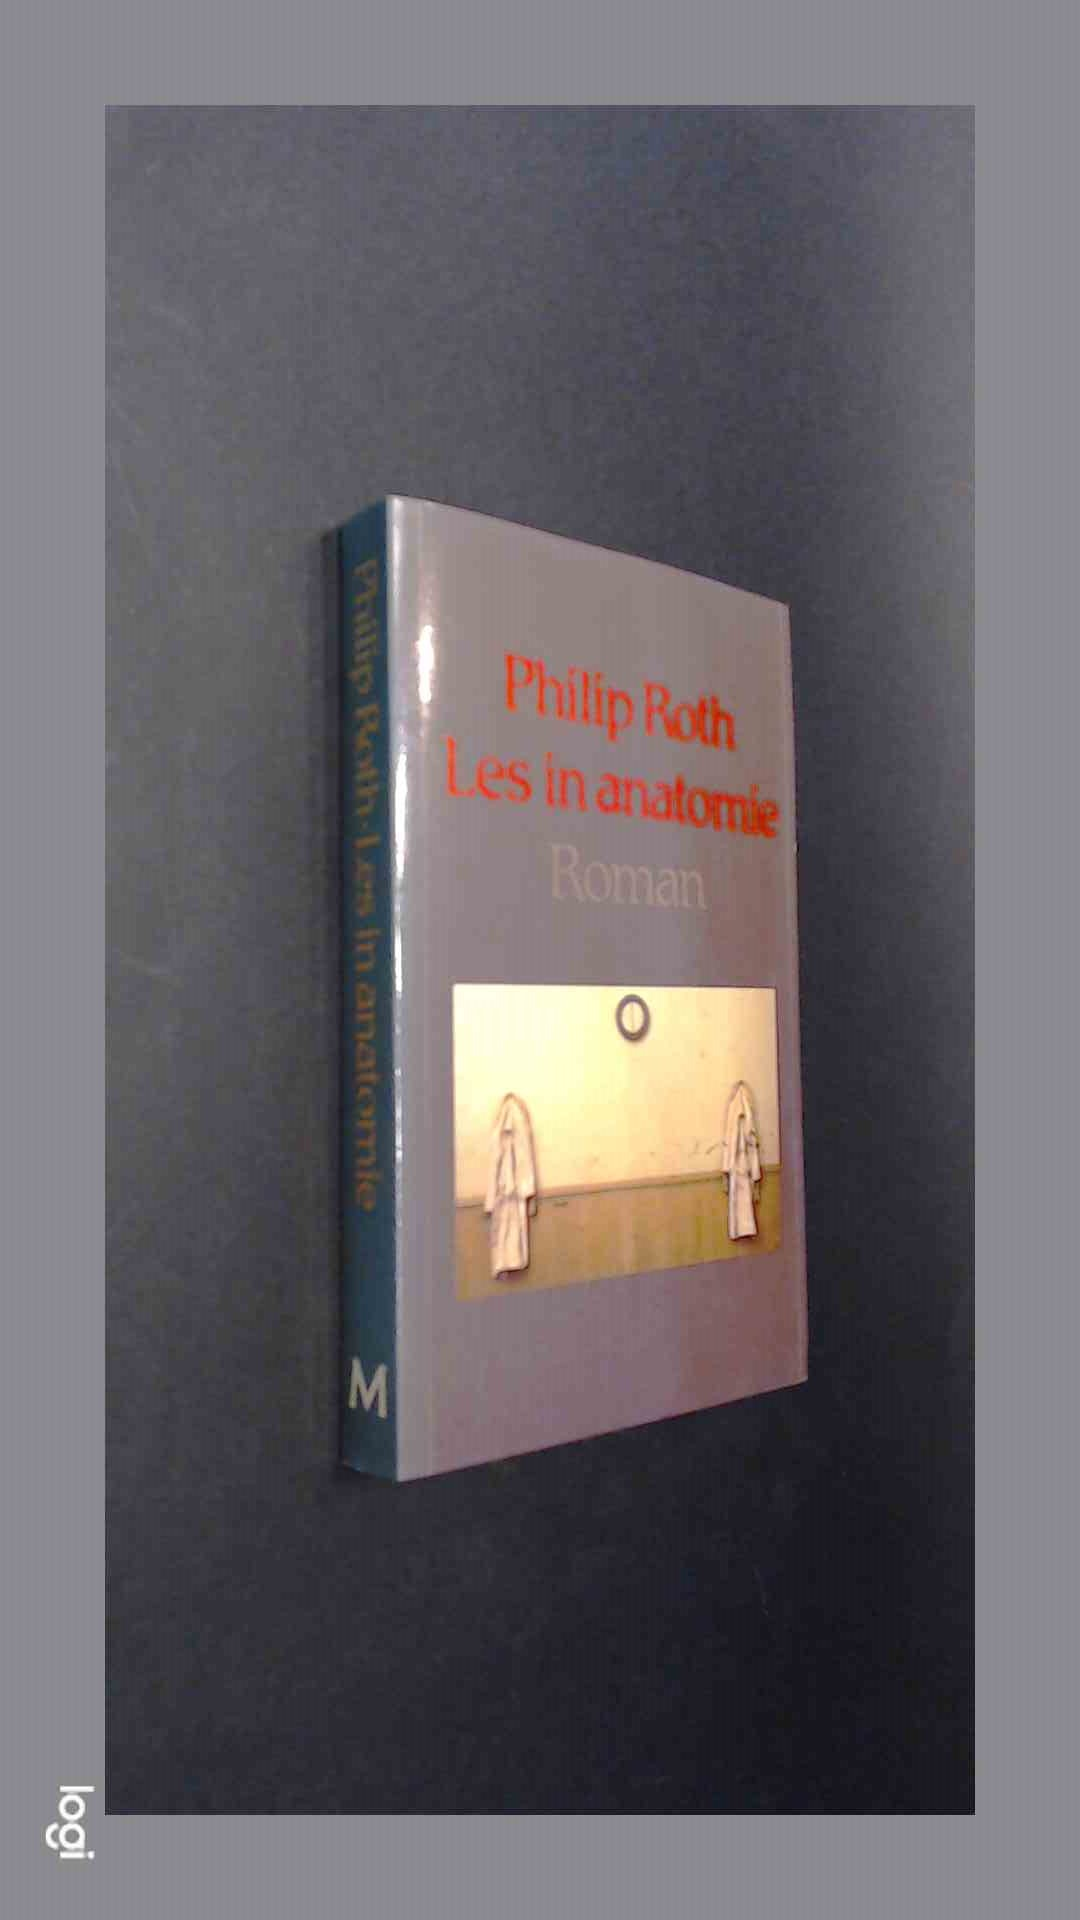 ROTH, PHILIP - Les in anatomie